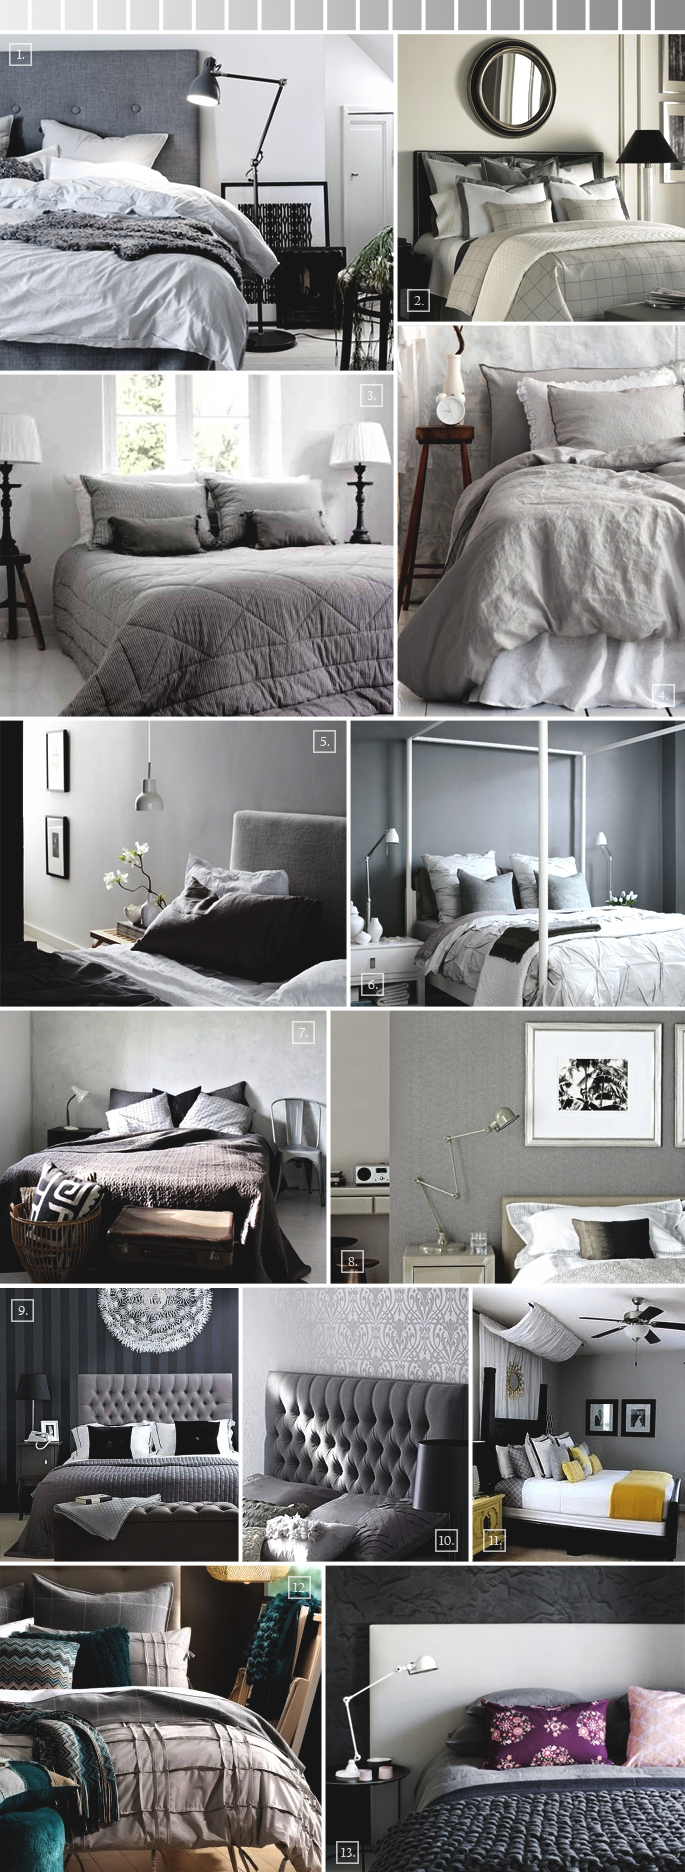 Grey Bedroom Ideas Decorating Tips And Design Pictures Home Tree Atlas